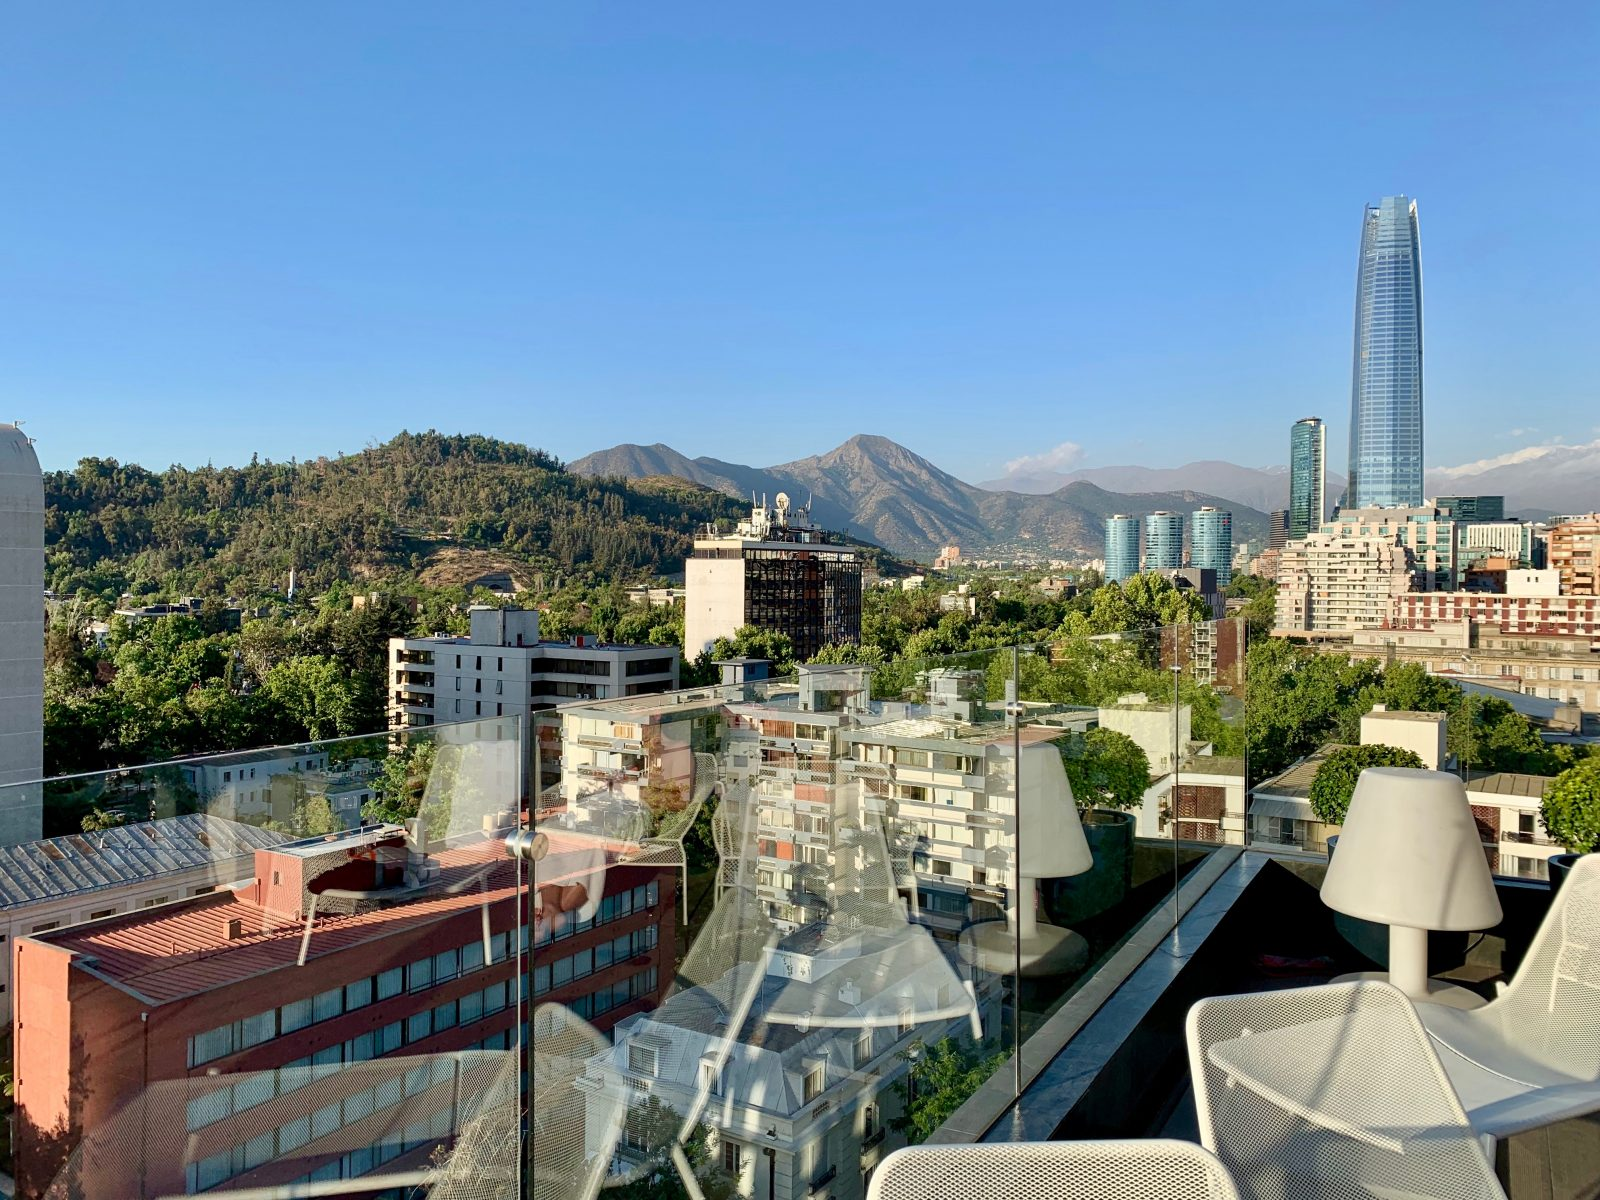 Views from Hotel Solace Santiago, Chile - StefanieGrace.com